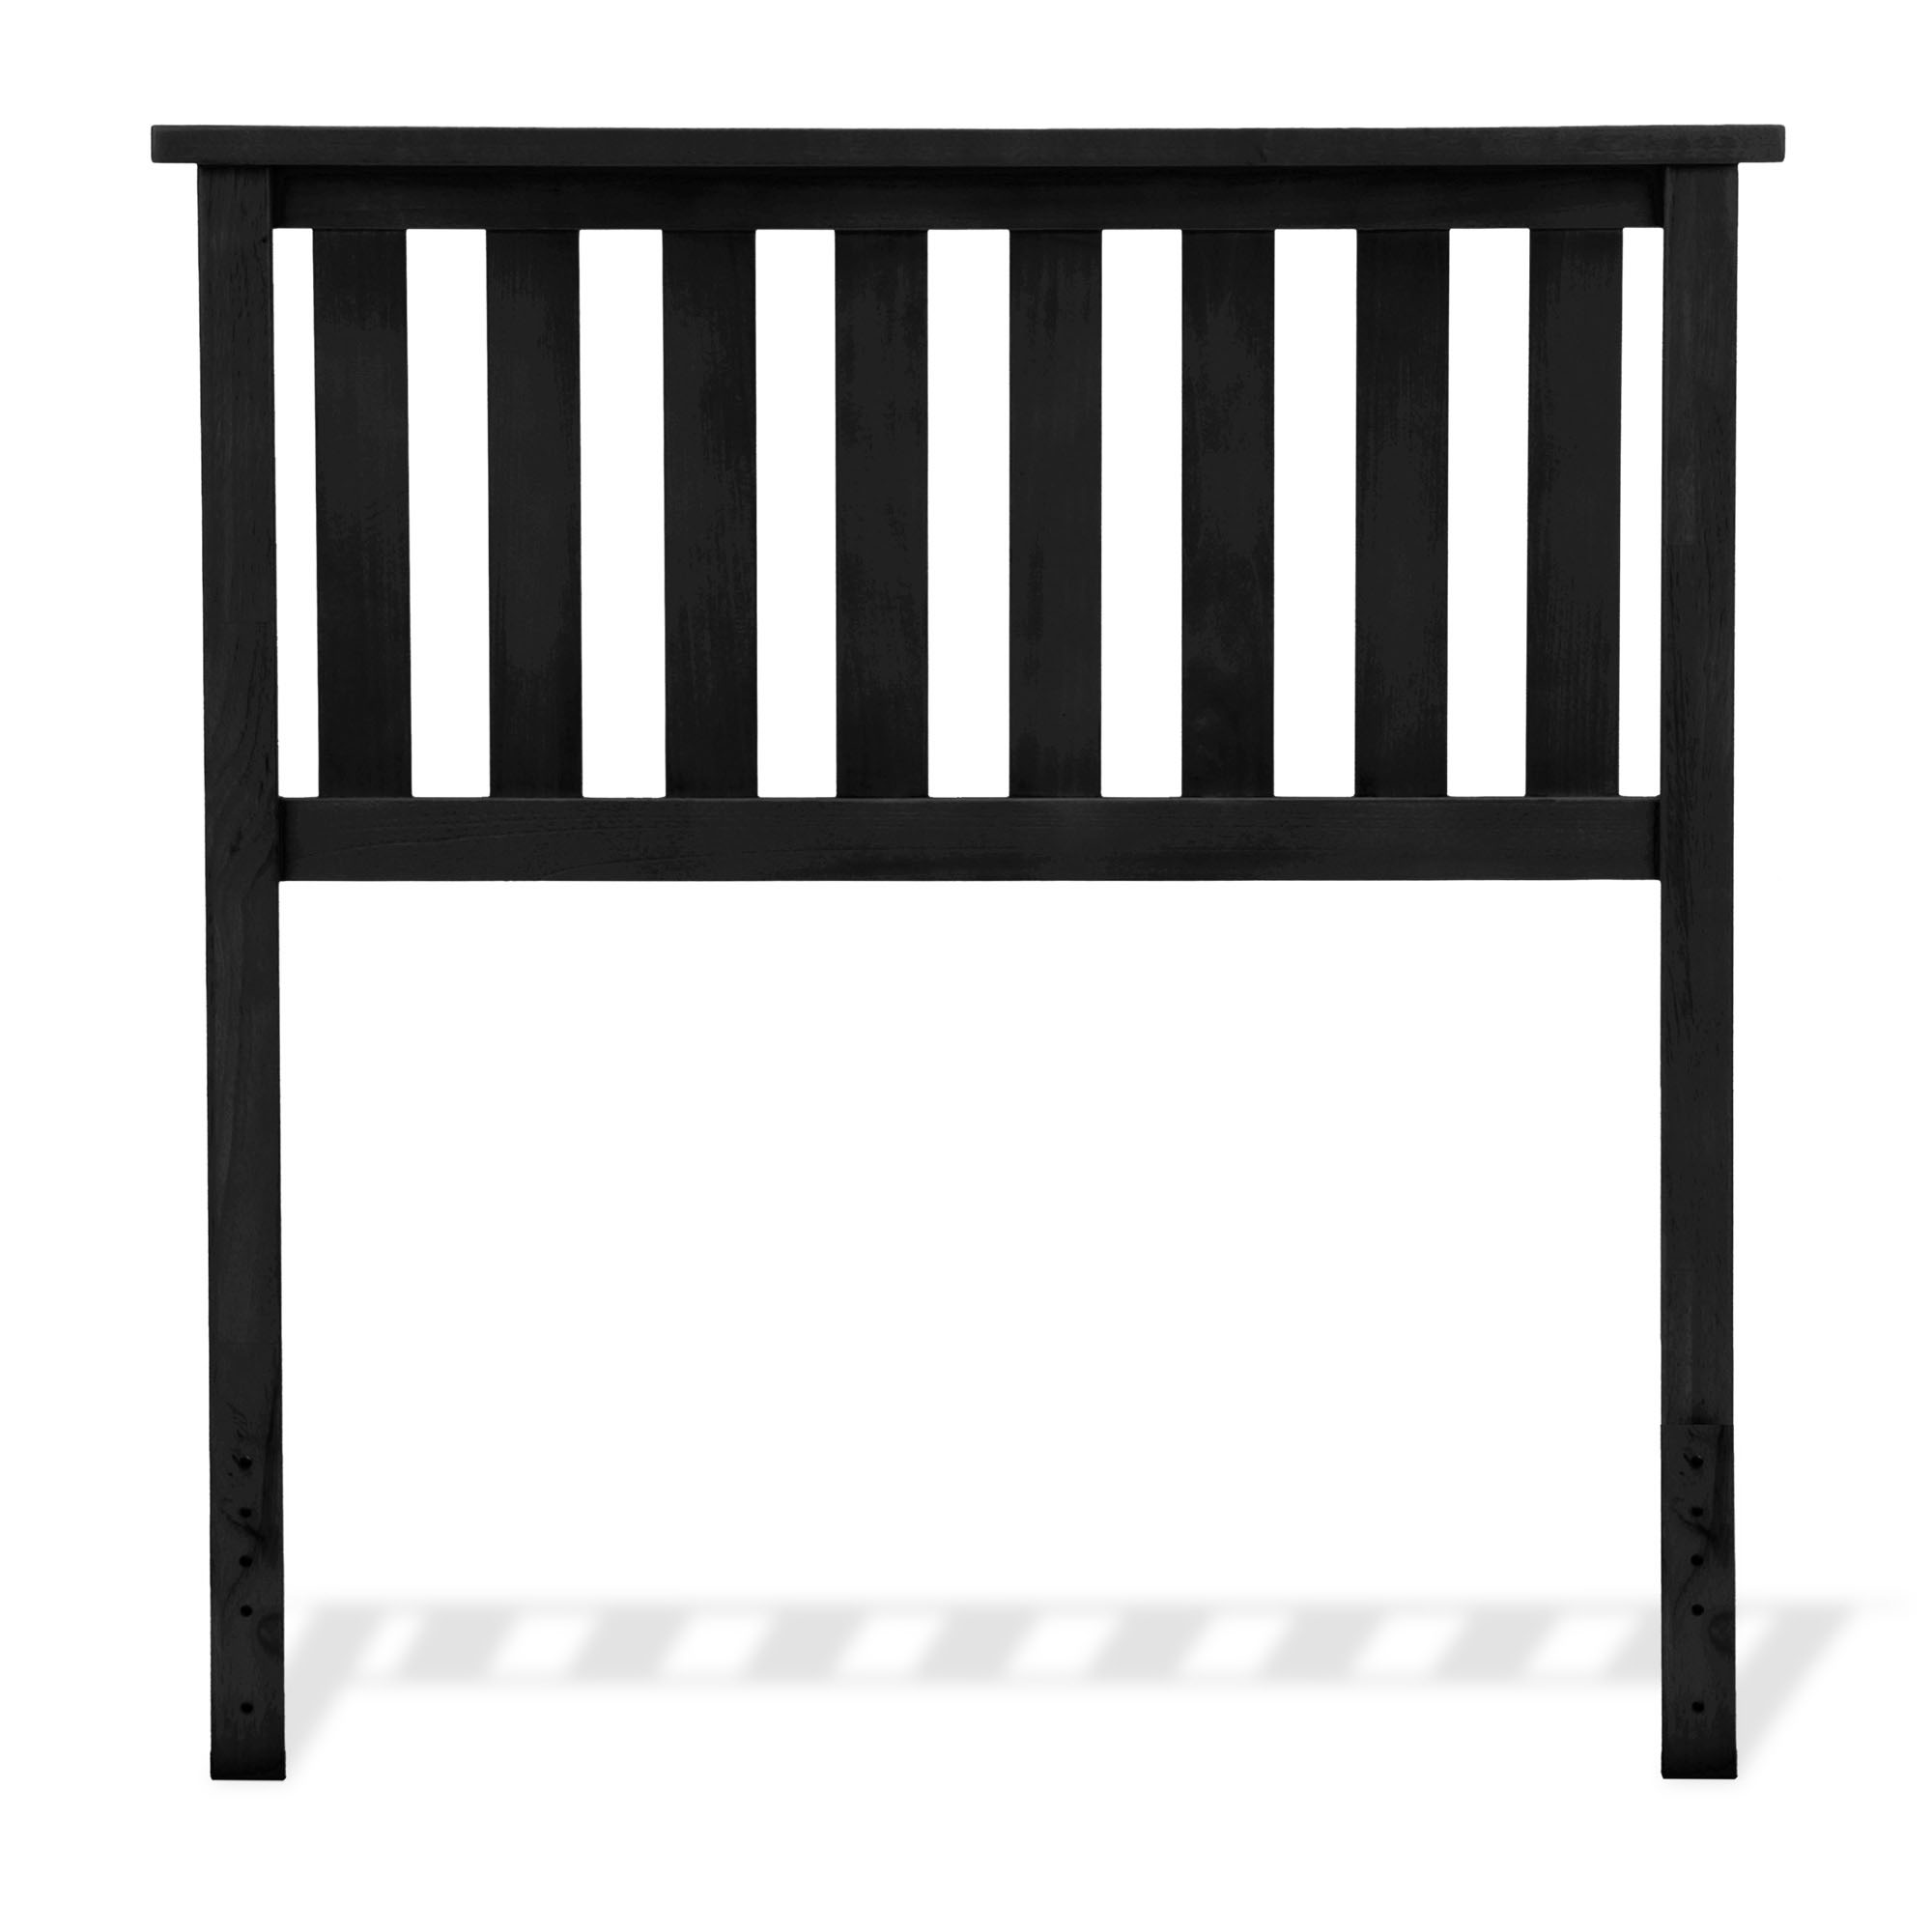 Belmont Wooden Headboard Panel with Slatted Grill Design, Black Finish, Twin by Fashion Bed Group